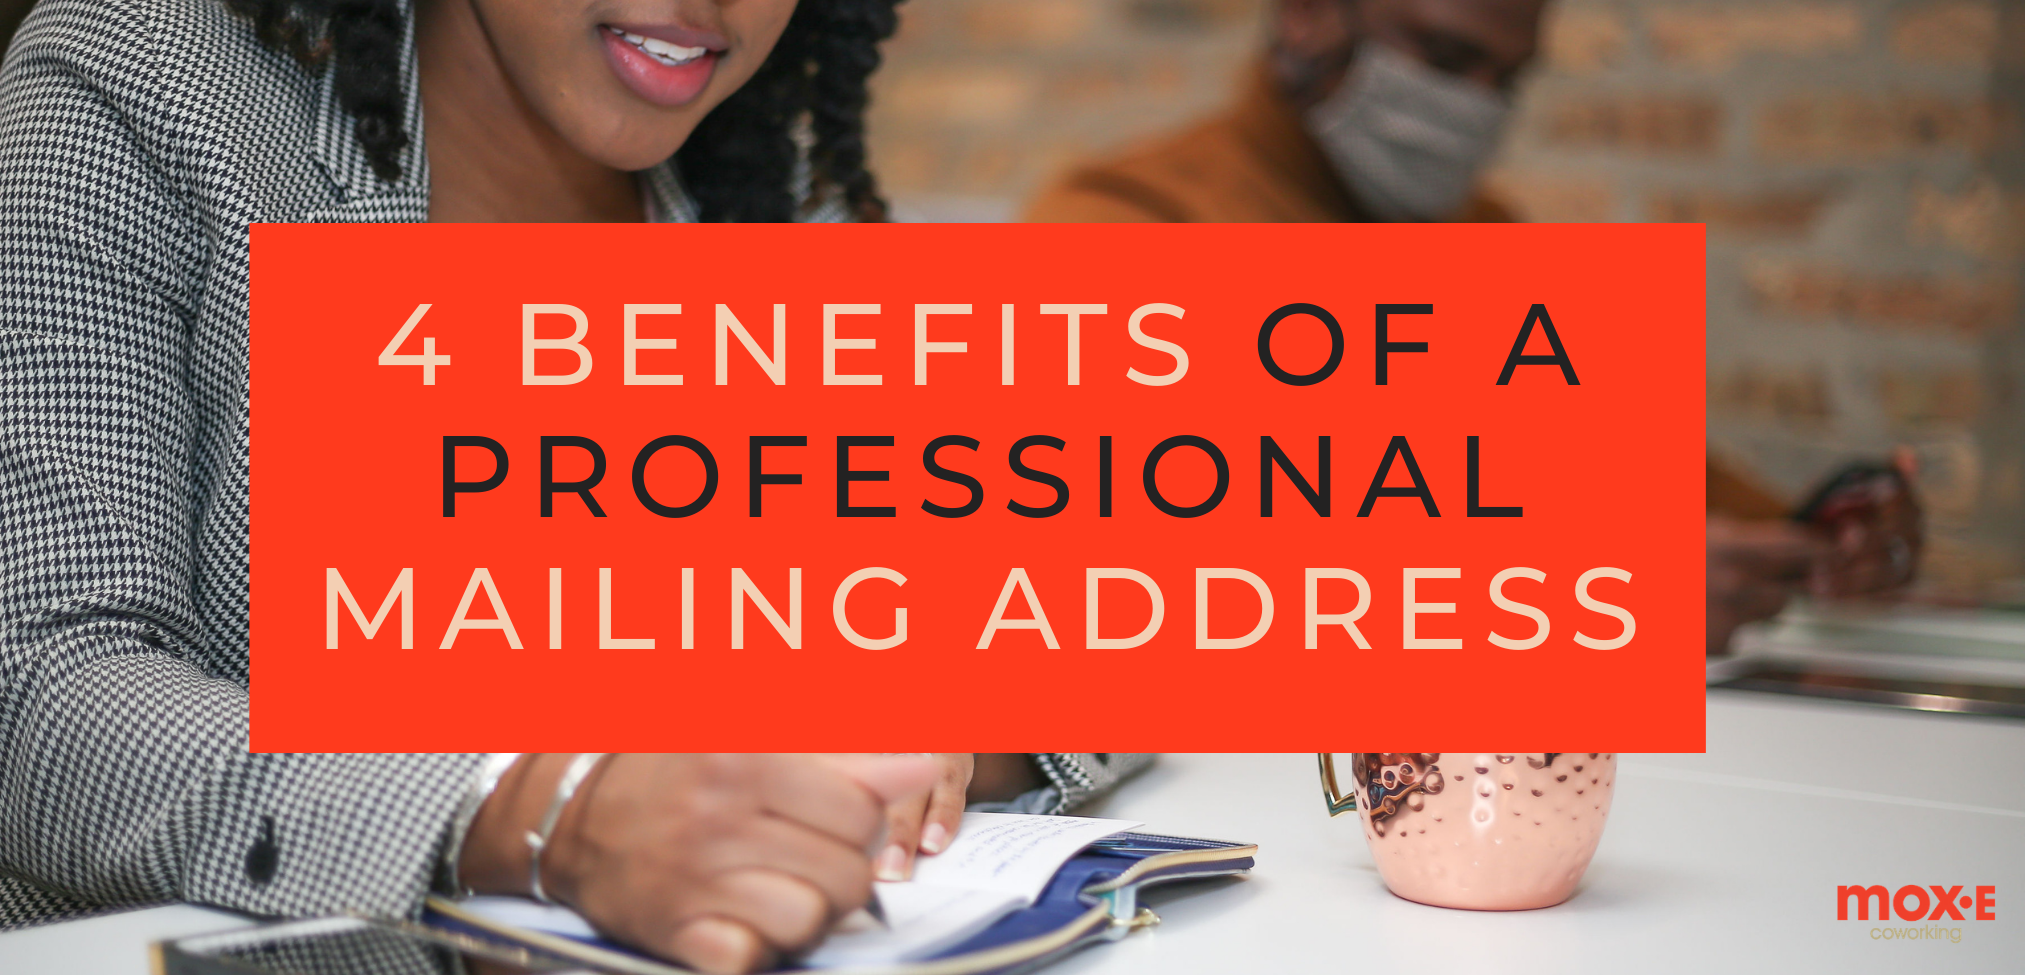 4 benefits of mailing address